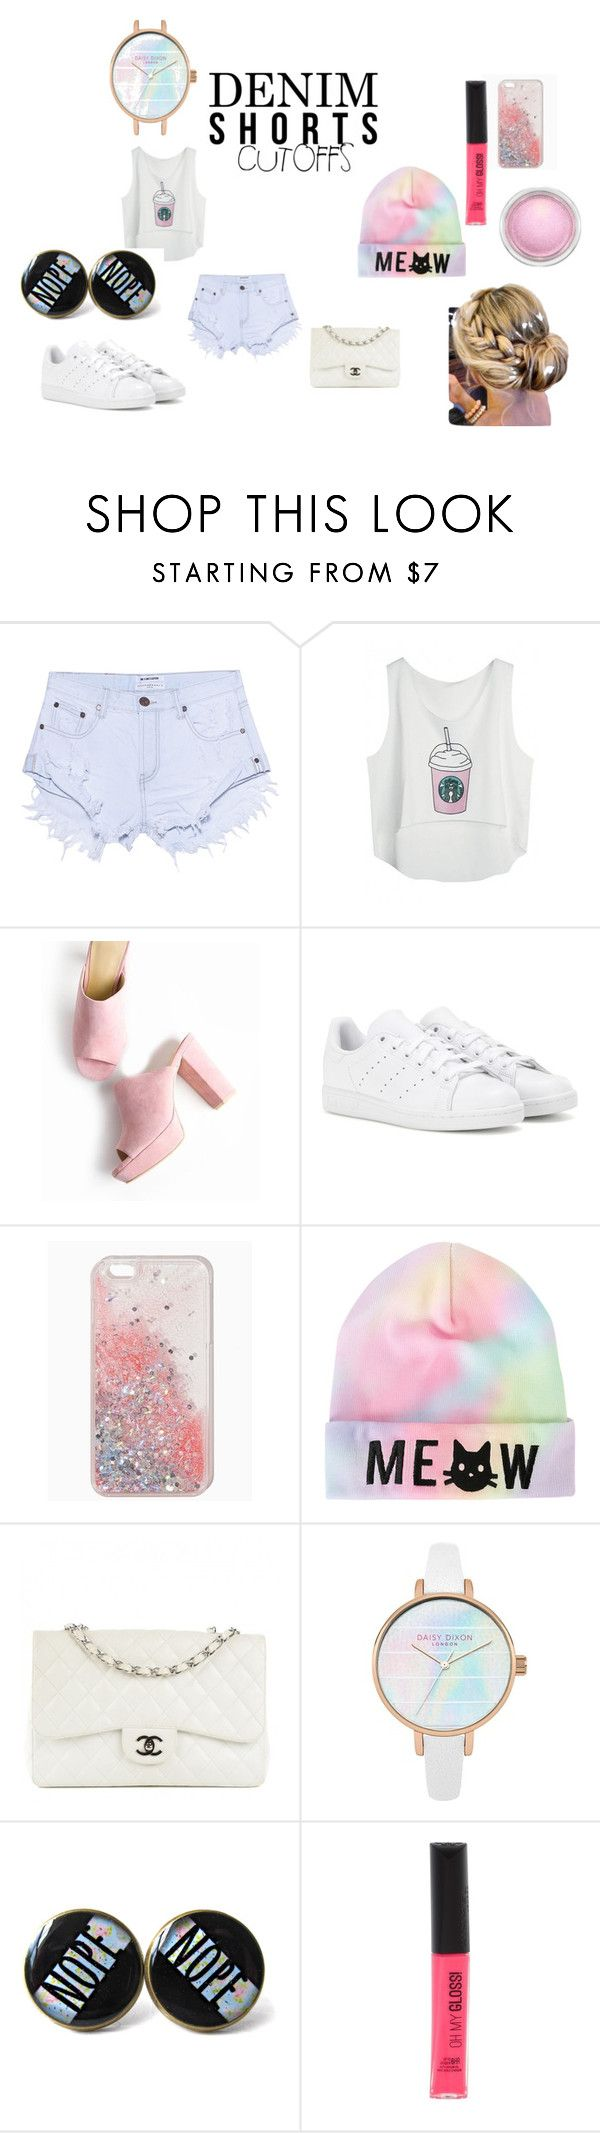 """""""#pastel kawii :3"""" by kawiicreations ❤ liked on Polyvore featuring OneTeaspoon, adidas, Chanel, Rimmel, MAC Cosmetics, jeanshorts, denimshorts and cutoffs"""